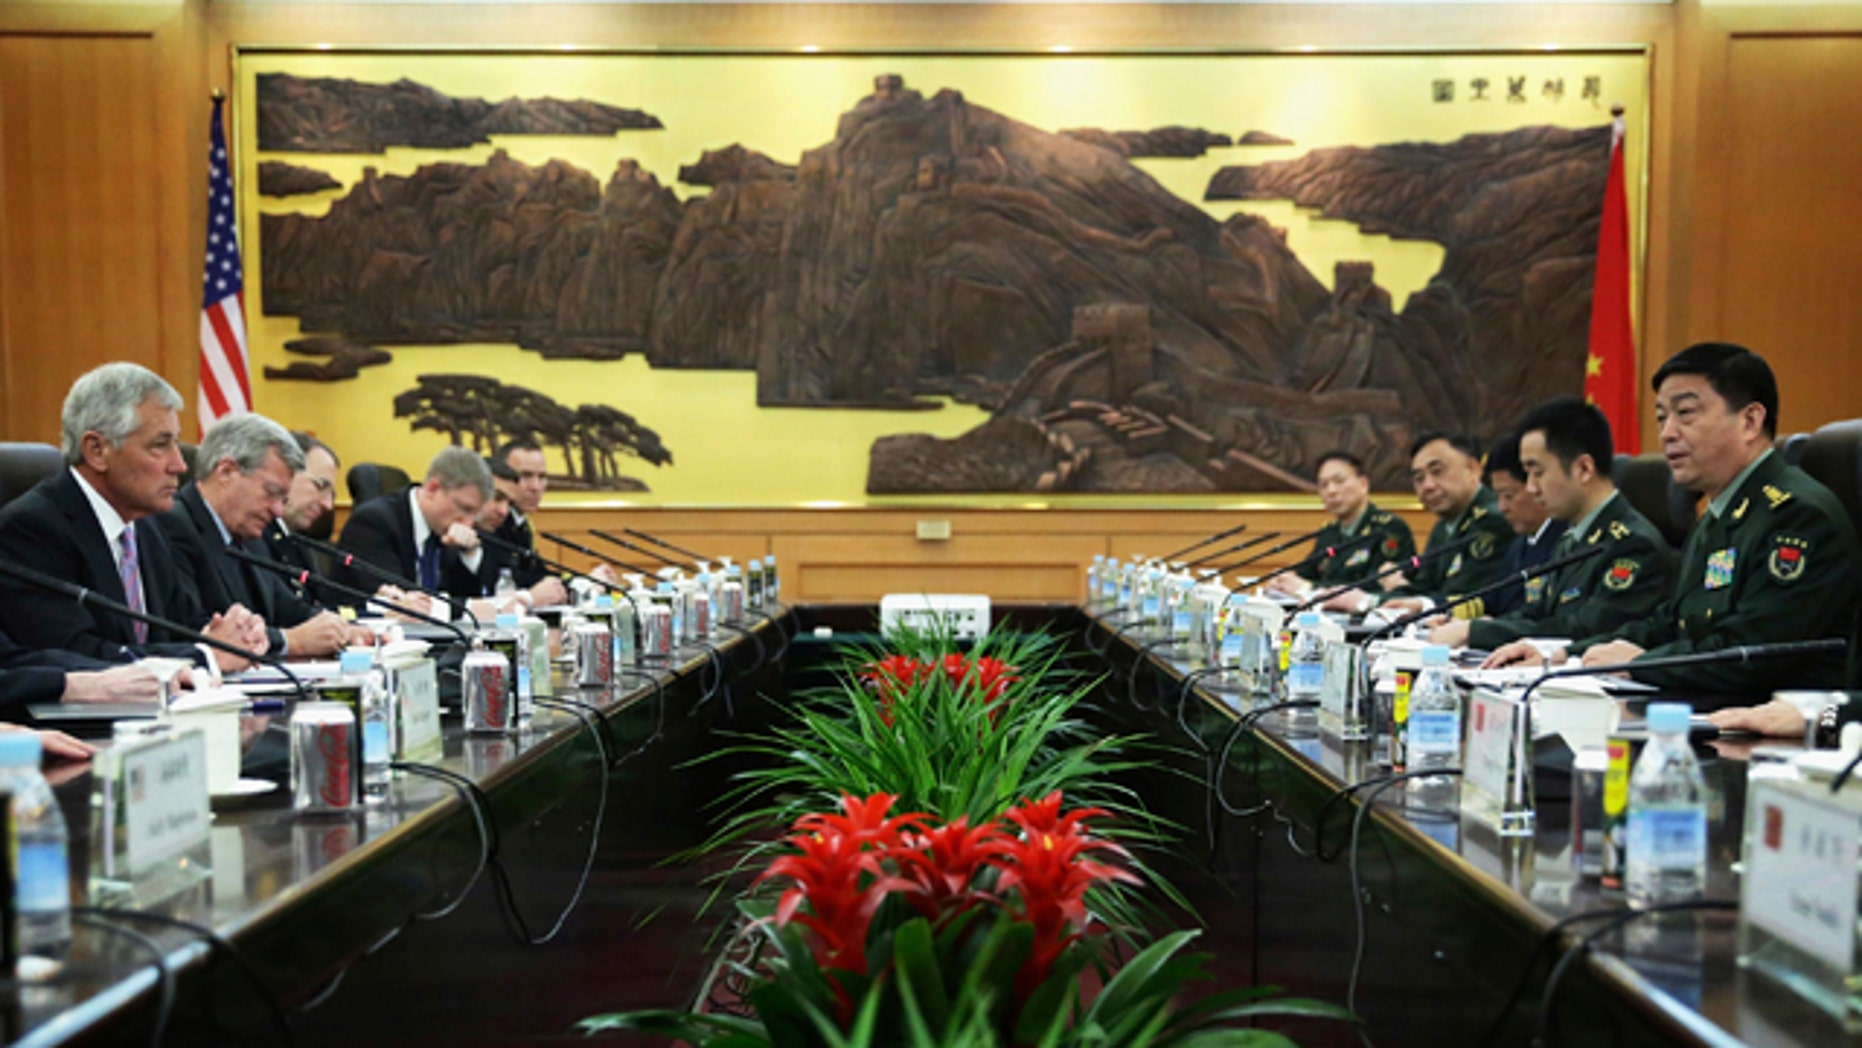 April 8, 2014: U.S. Secretary of Defense Chuck Hagel, left, and Chinese Minister of Defense Chang Wanquan, right, take seat prior to their meeting at the Chinese Defense Ministry headquarters in Beijing. Hagel arrived in Beijing after a stop in Japan, where he told reporters that China must be more open about its military buildup and better respect its neighbors - a pointed allusion to Beijing's ongoing territorial dispute with Japan and others over remote islands in the East China Sea. (AP Photo/Alex Wong, Pool)